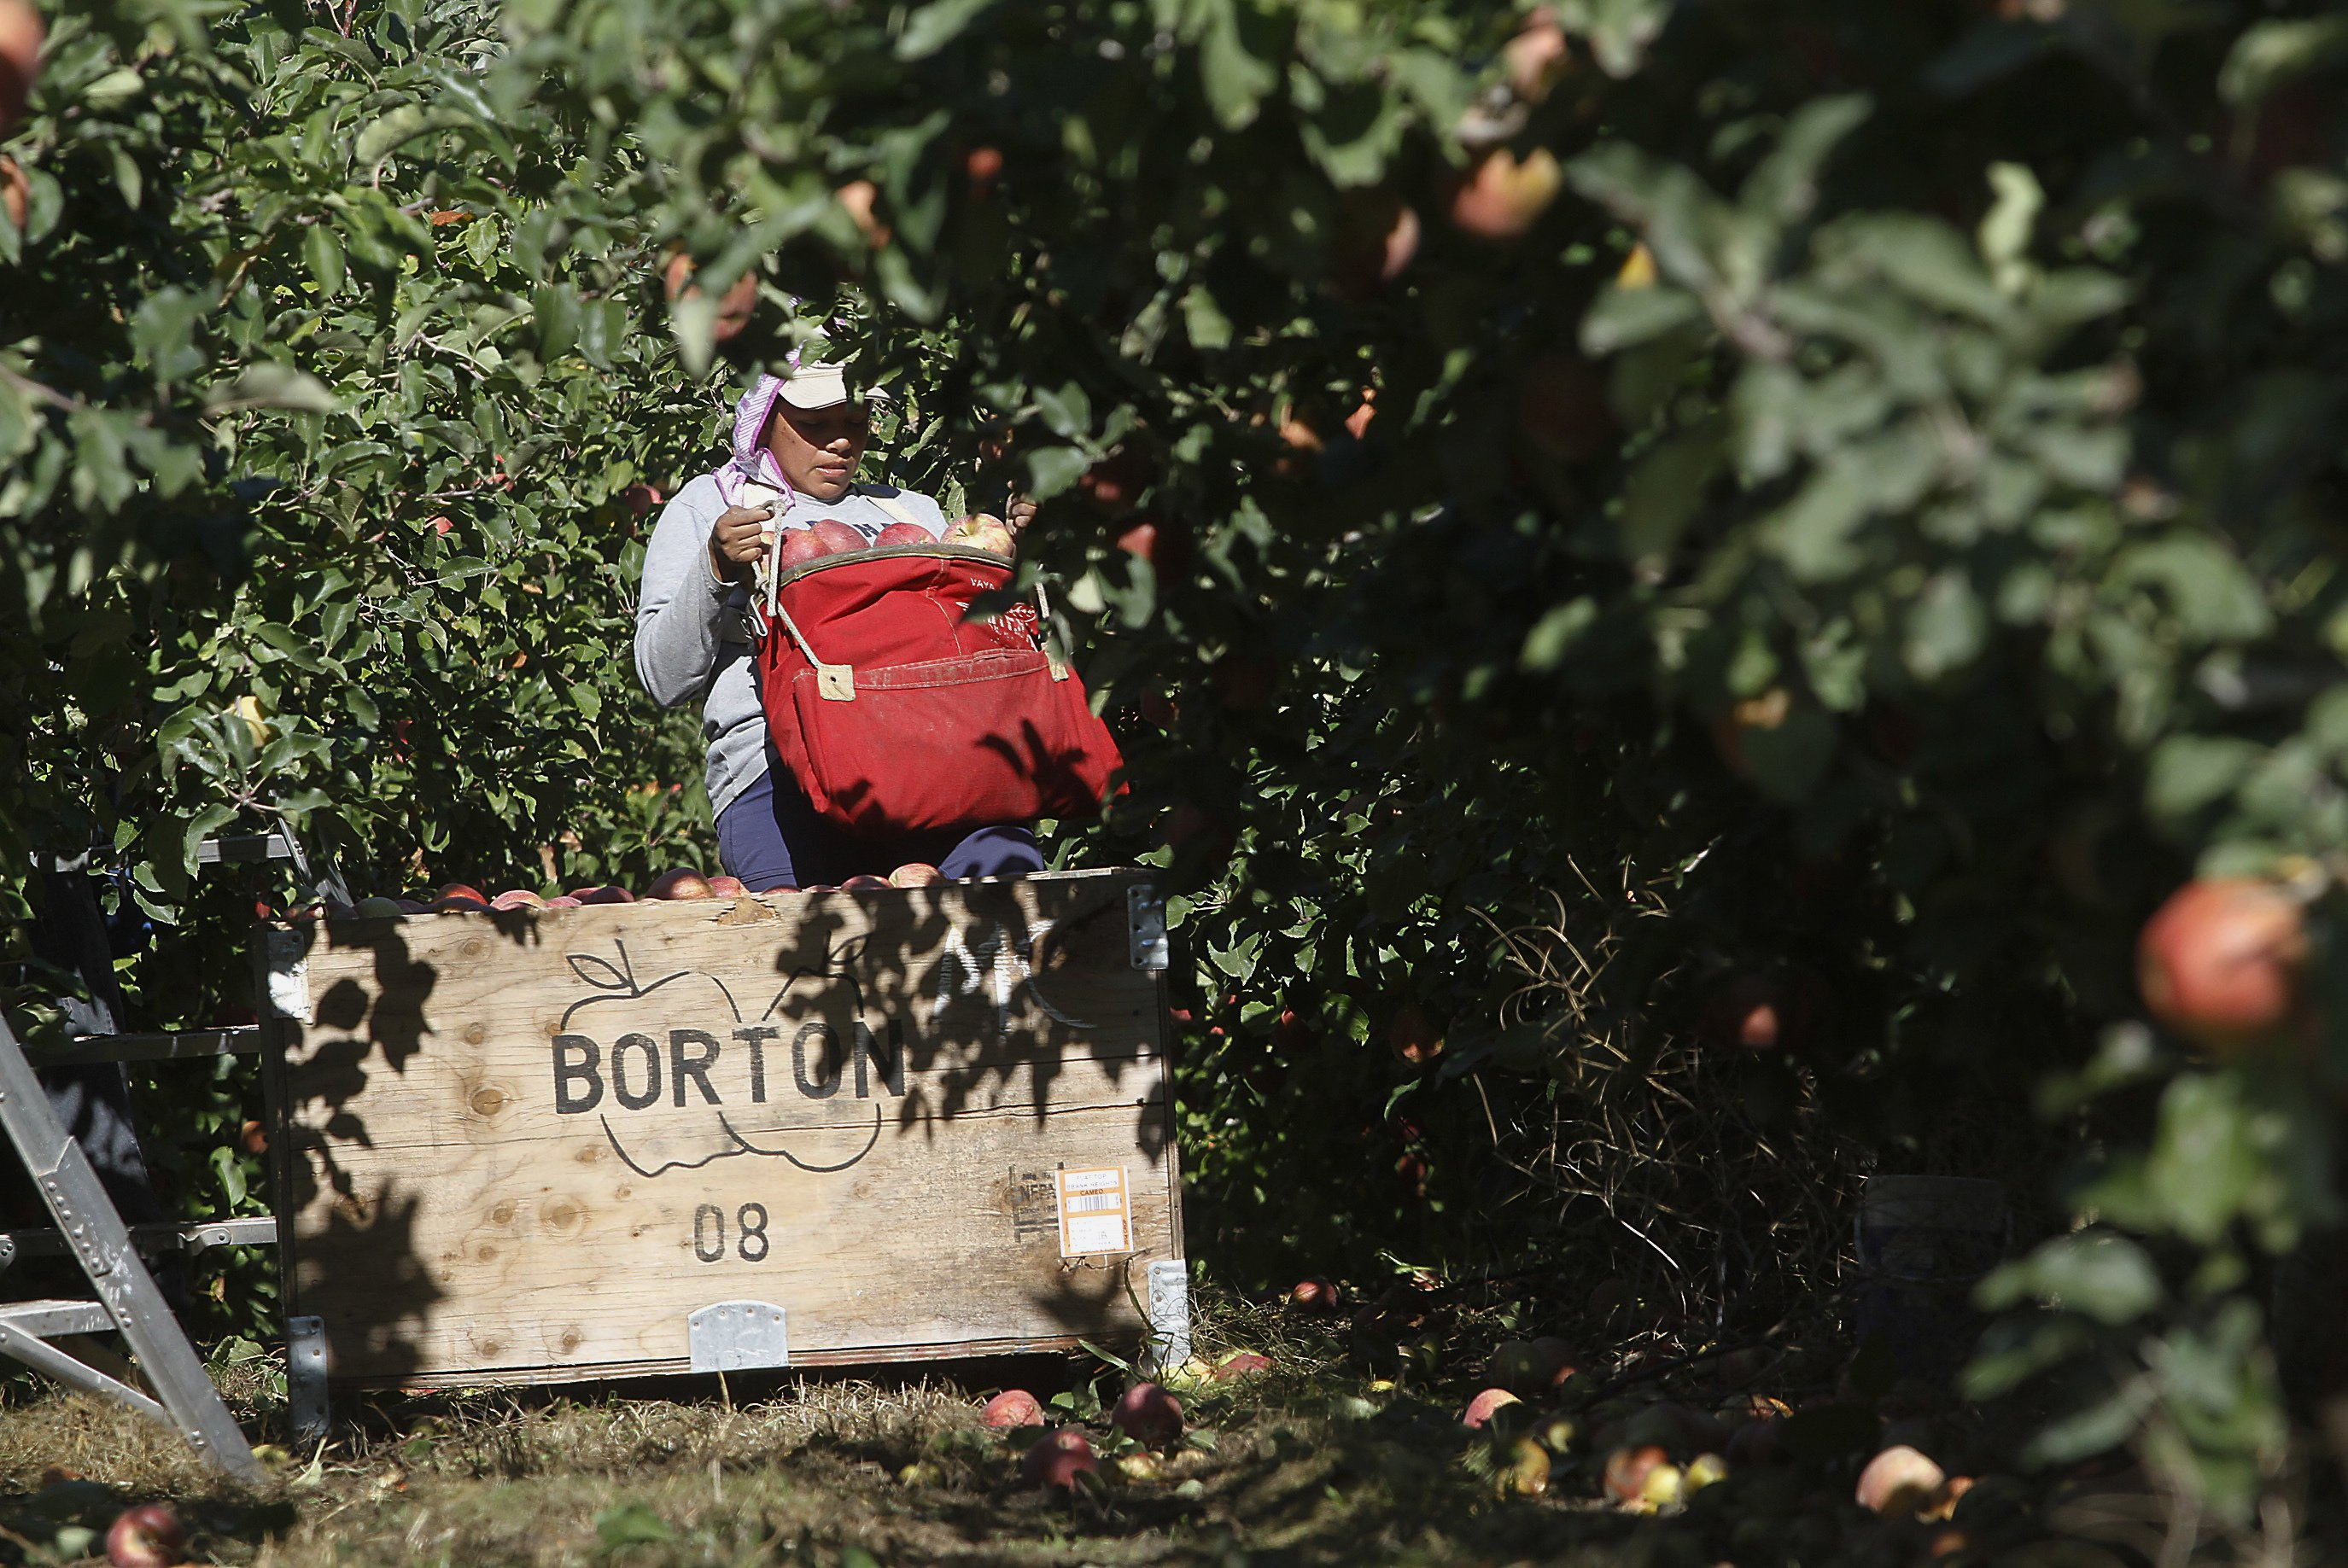 Robotic fruit pickers may help orchards with worker shortage